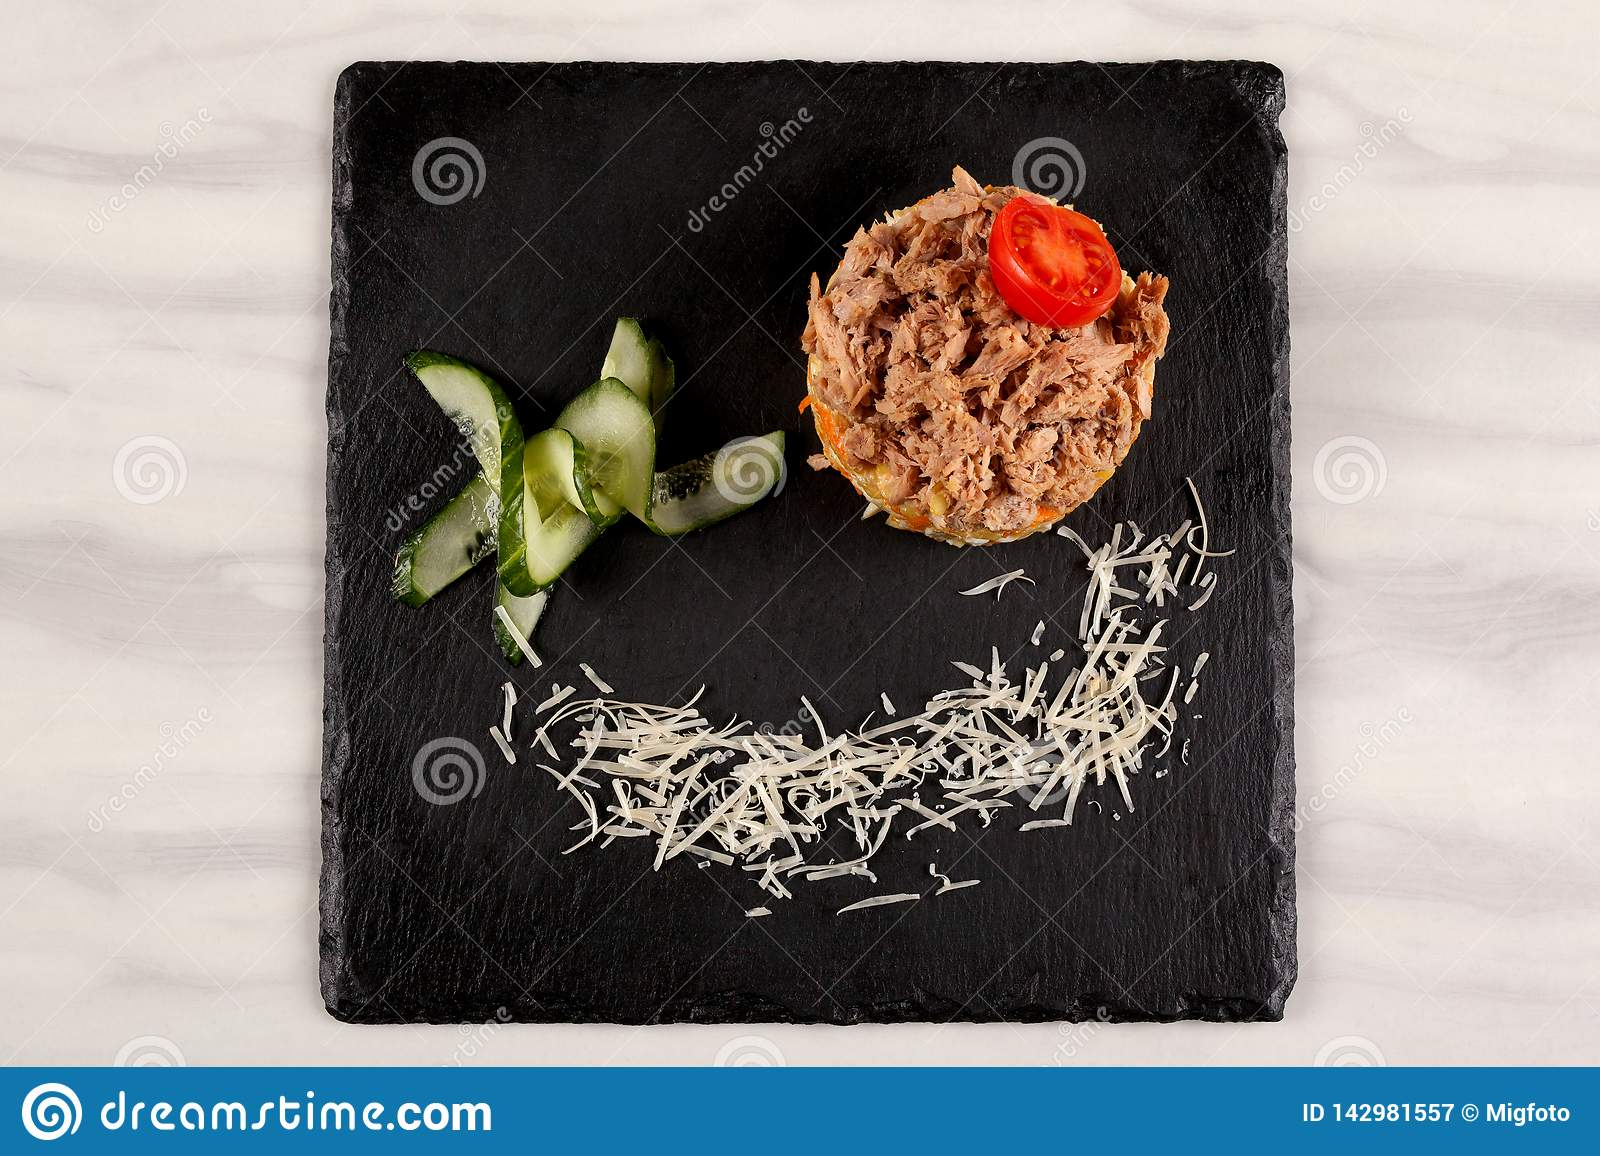 Food in the plate